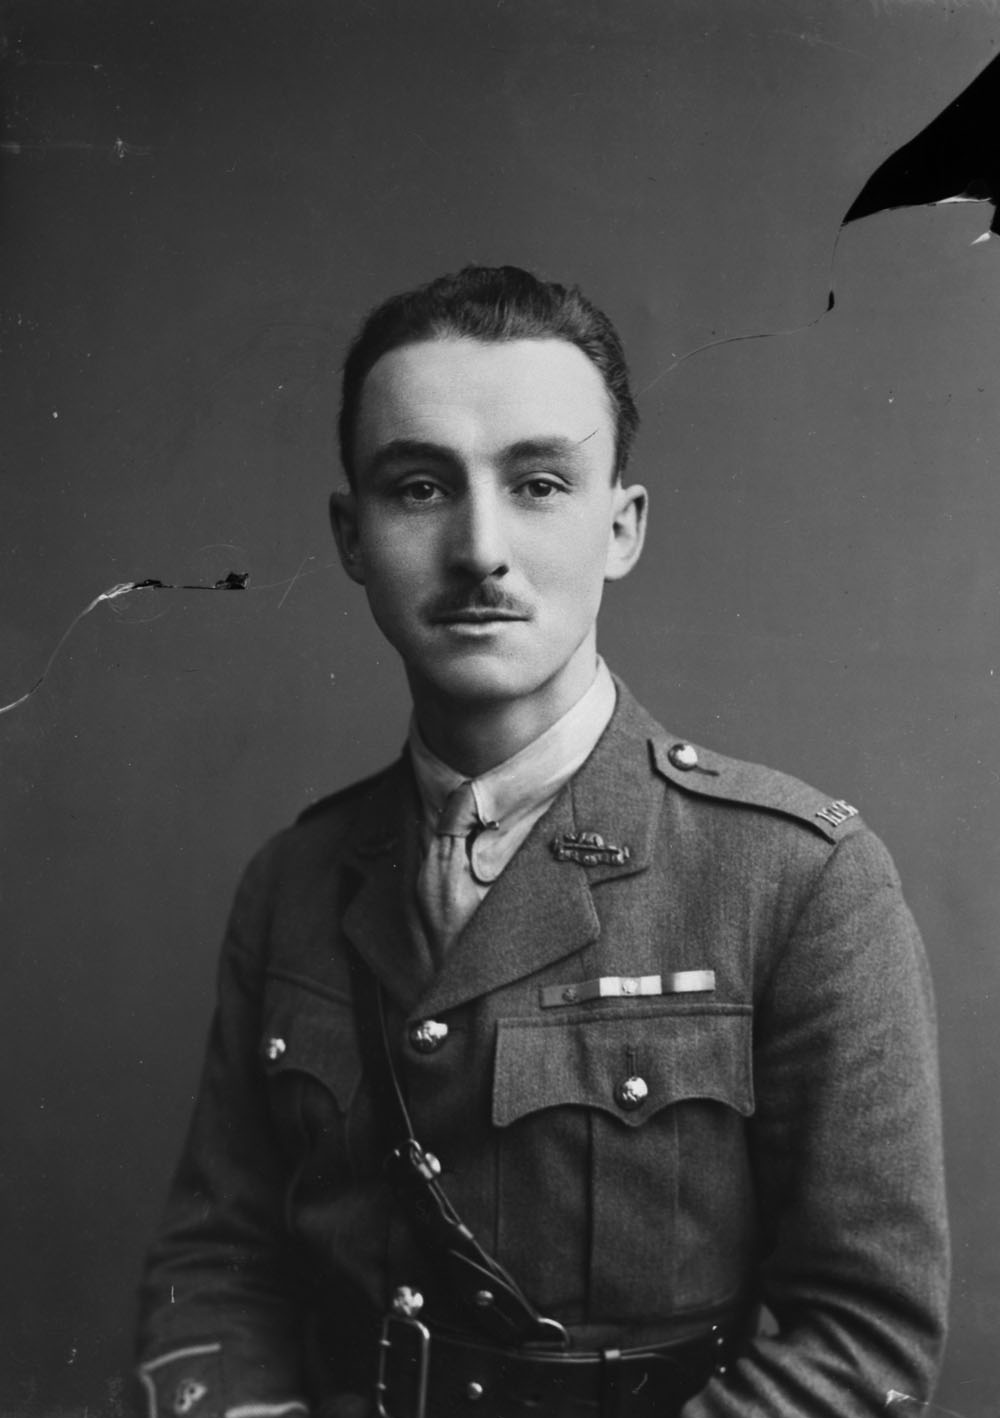 A black-and-white photograph of a soldier.